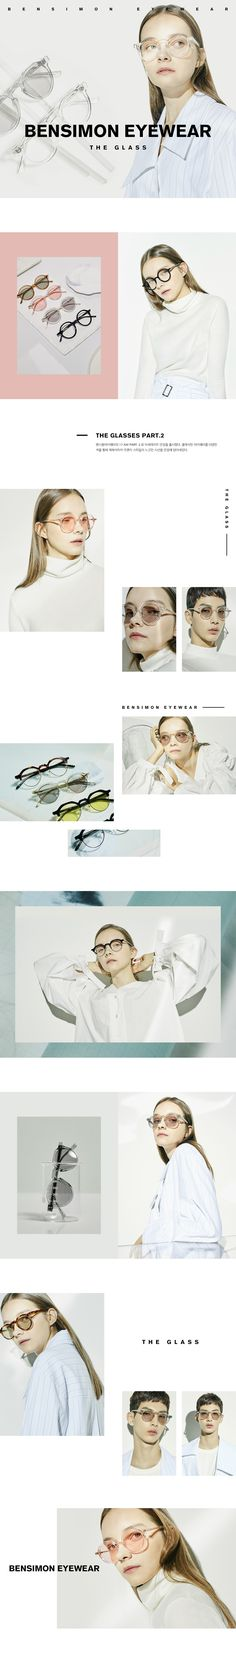 W컨셉 공식사이트, 유니크한 디자이너 브랜드 편집샵 Web Layout, Layout Design, Fashion Web Design, Fashion Trends, Lookbook Layout, Fashion Banner, Fashion Catalogue, Korea Fashion, Unisex Fashion